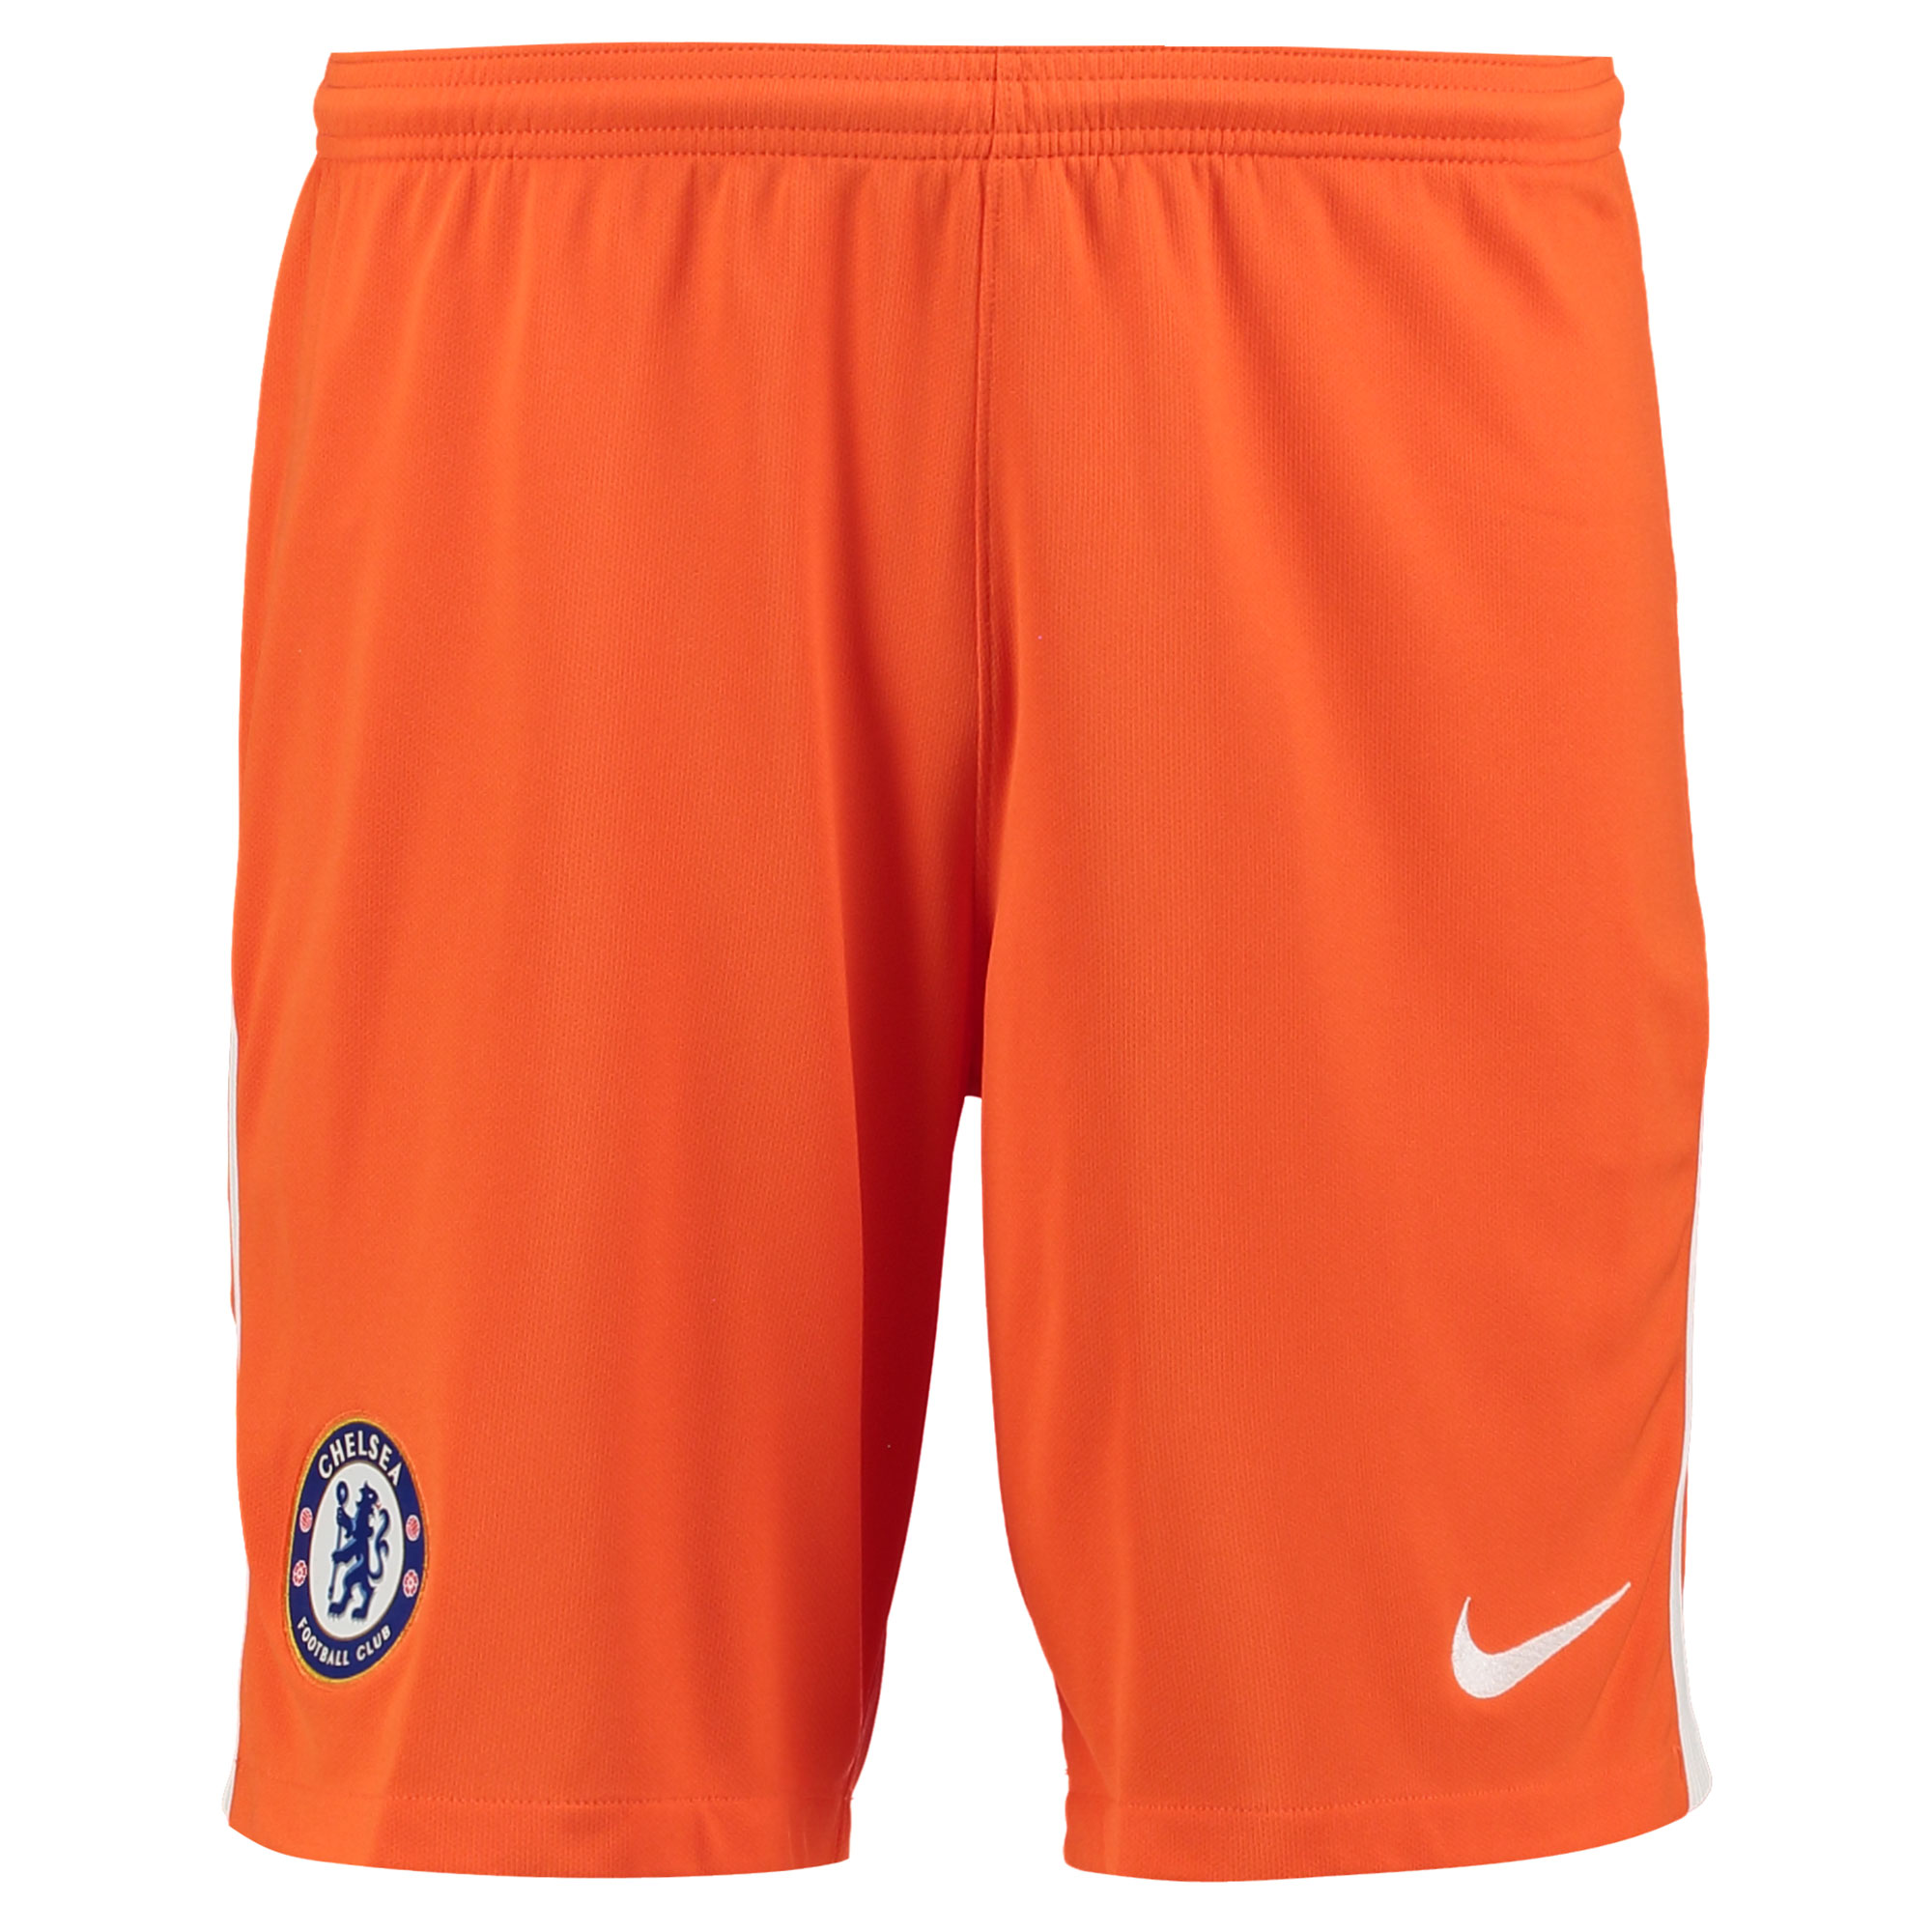 Pantalon Foot Pas Cher Chelsea Gardien 2017 2018 Orange